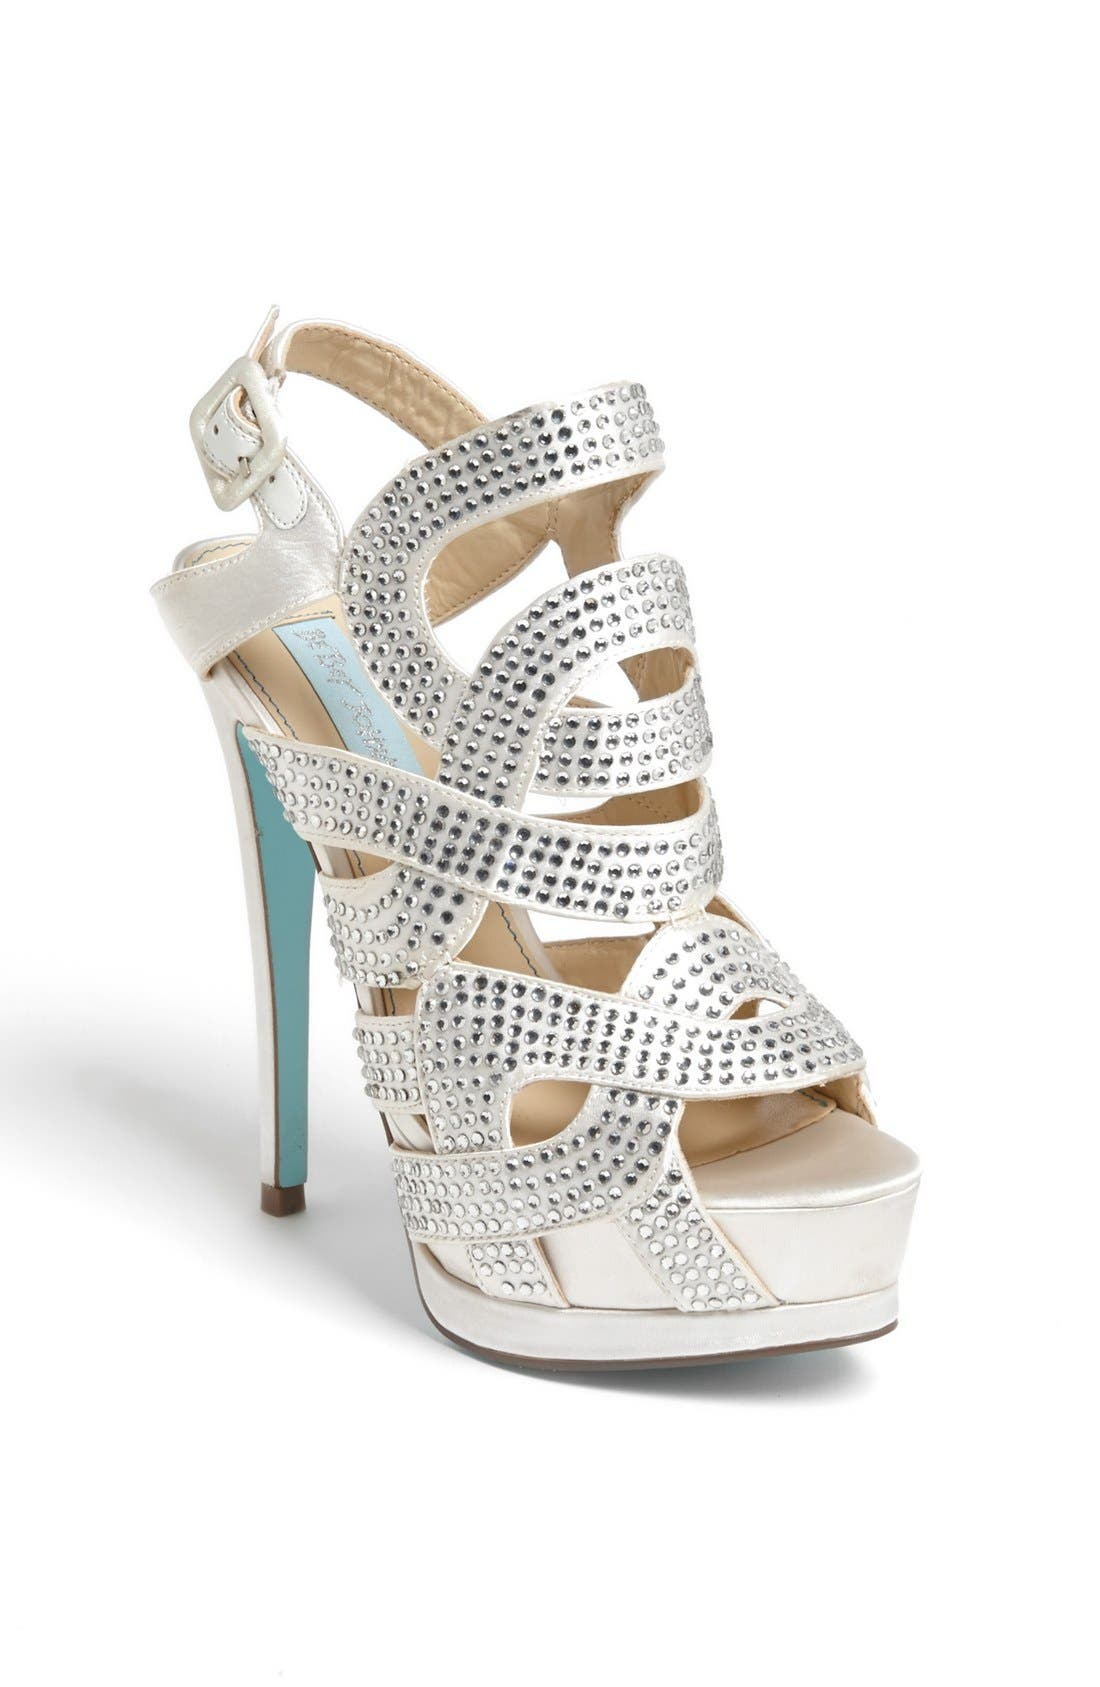 Alternate Image 1 Selected - Blue by Betsey Johnson 'Love' Sandal